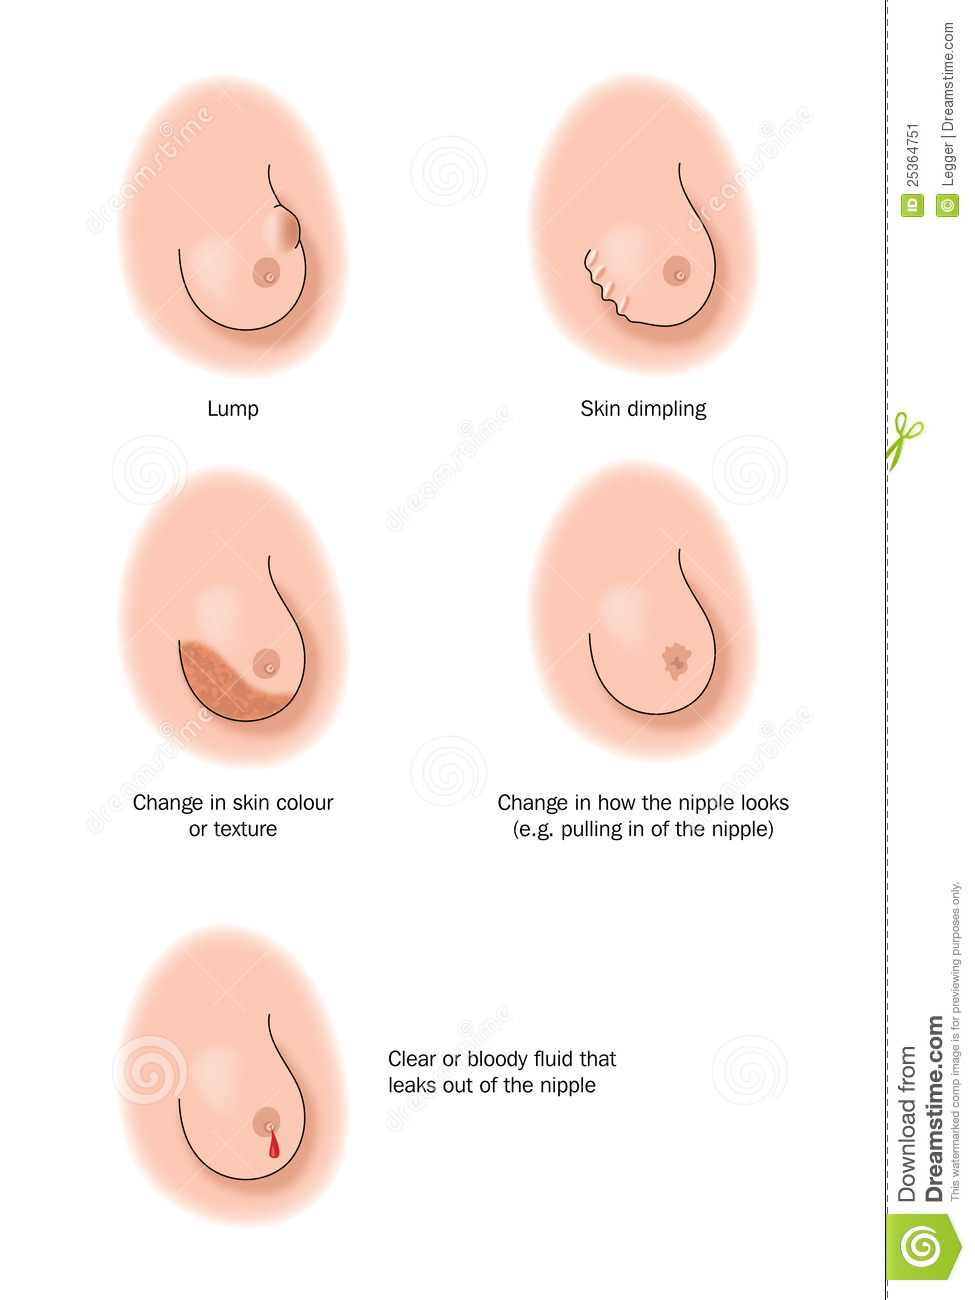 breast cancer symptoms dimpling pictures Quotes